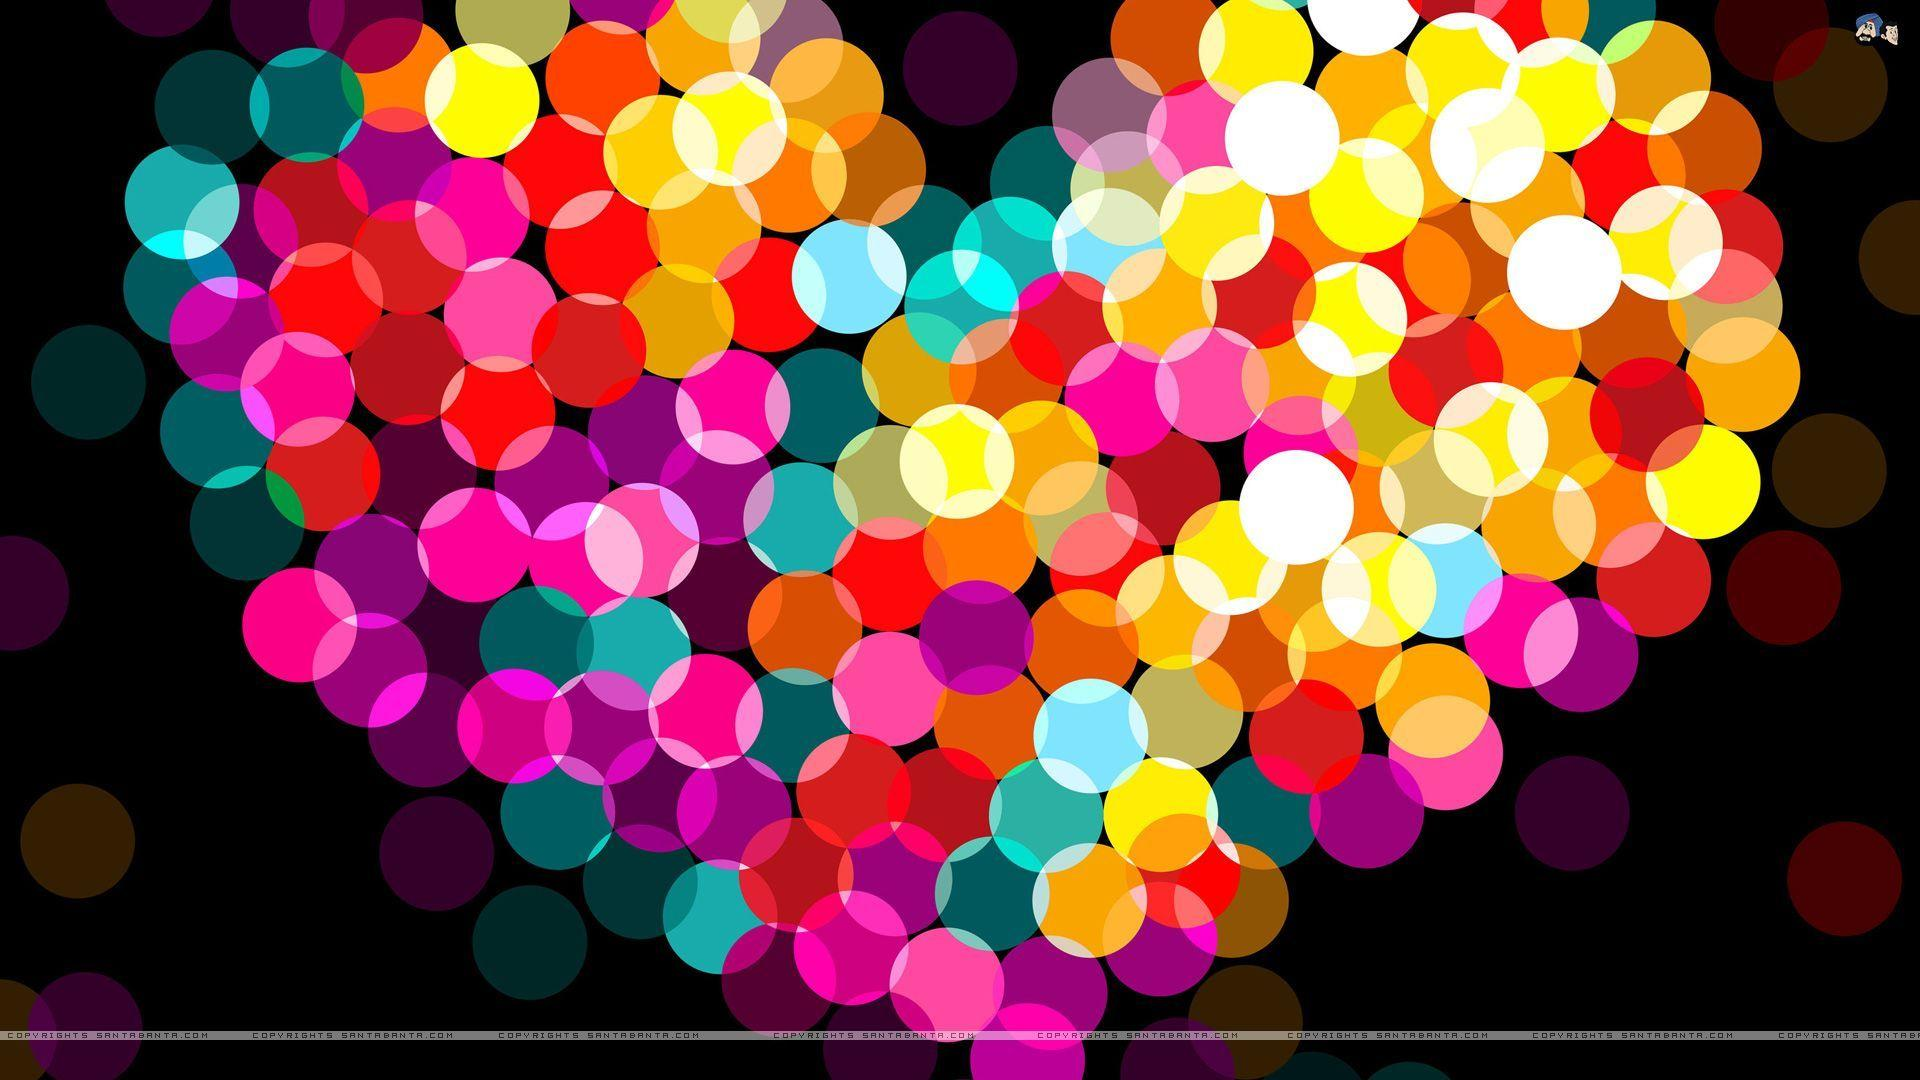 Colorful hearts wallpapers wallpaper cave - Heart to heart wallpaper ...